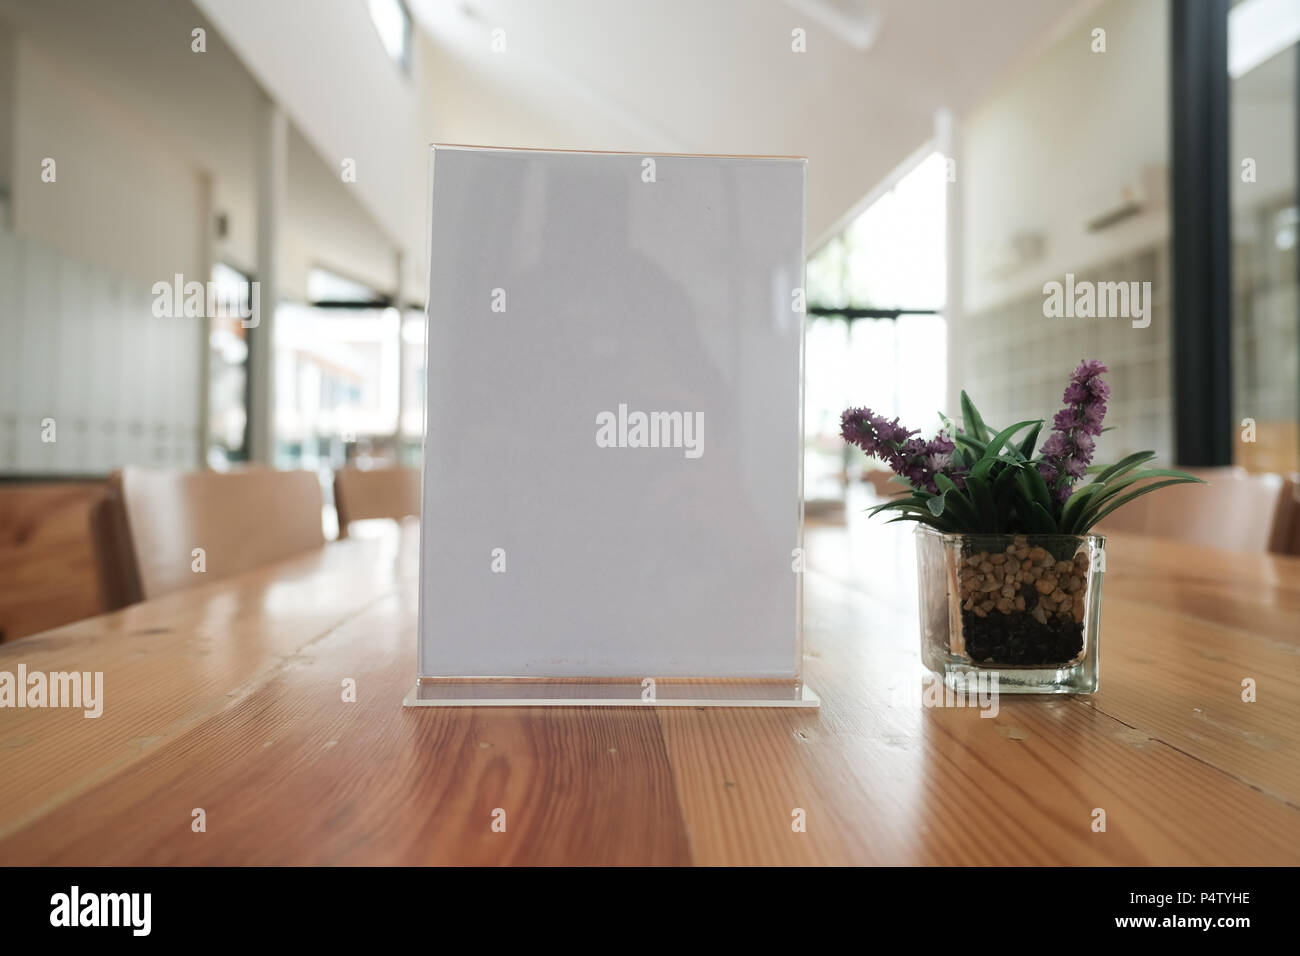 White Label In Cafe Display Stand For Acrylic Tent Card In Coffee Shop Mockup Menu Frame On Table In Bar Restaurant Space For Text Stock Photo Alamy